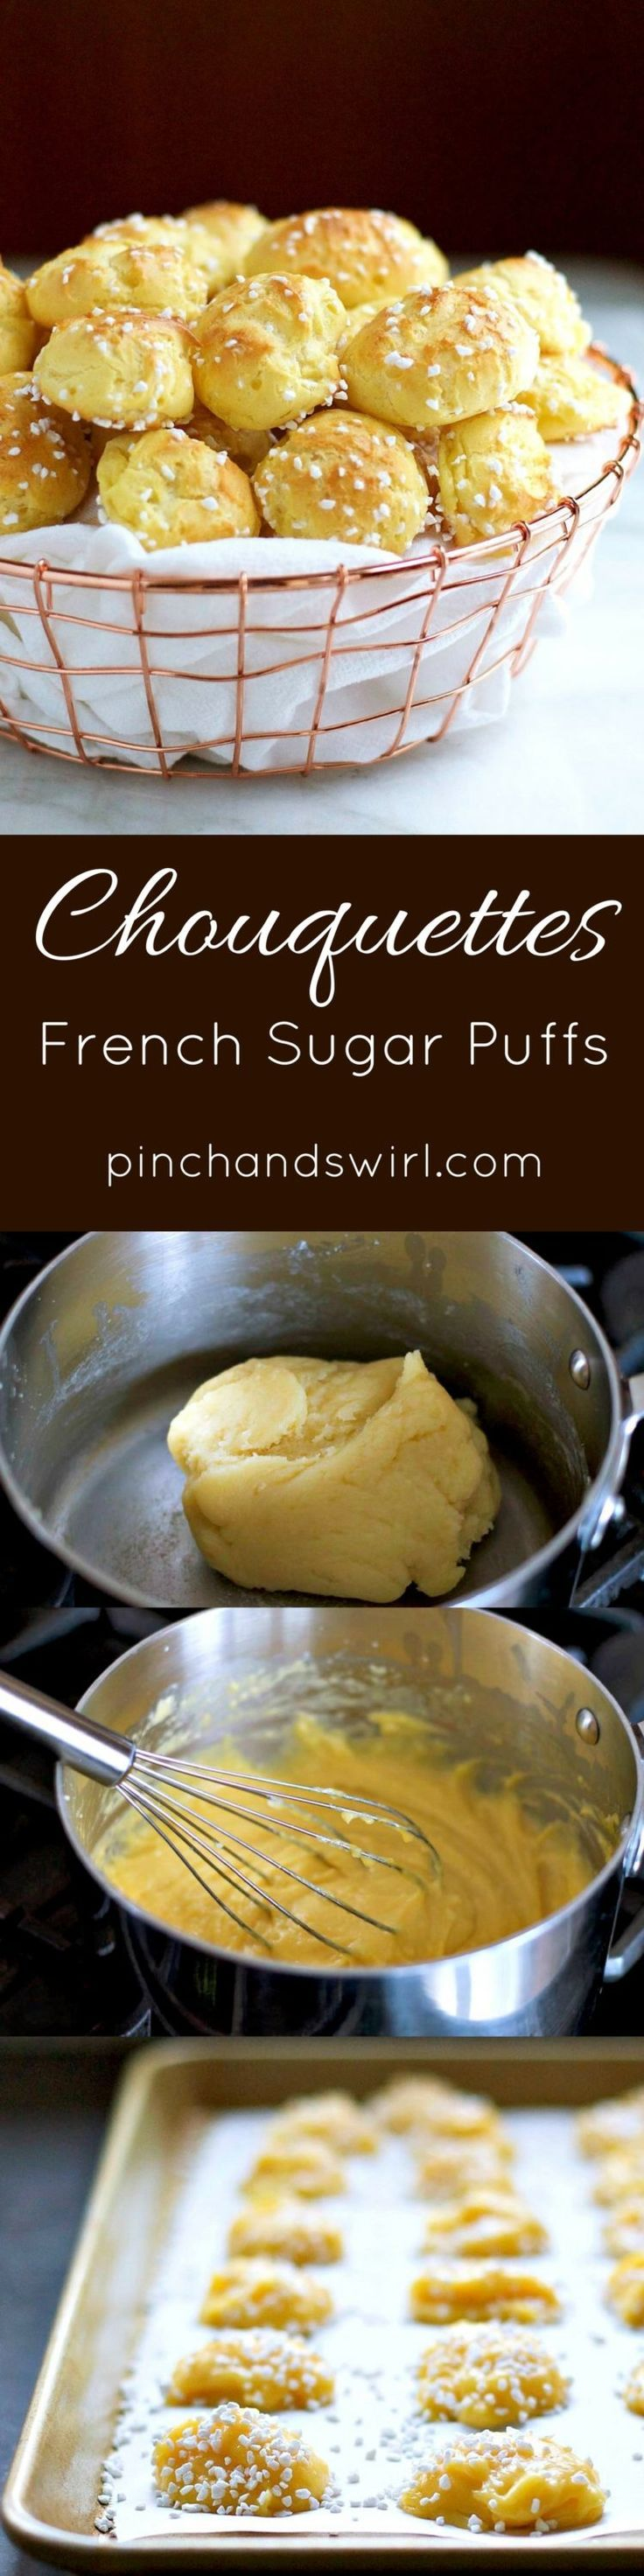 Chouquettes are a French Sugar Puff Recipe that is easy and delicious!   Chouquette Recipe   French Cream Puff Recipe